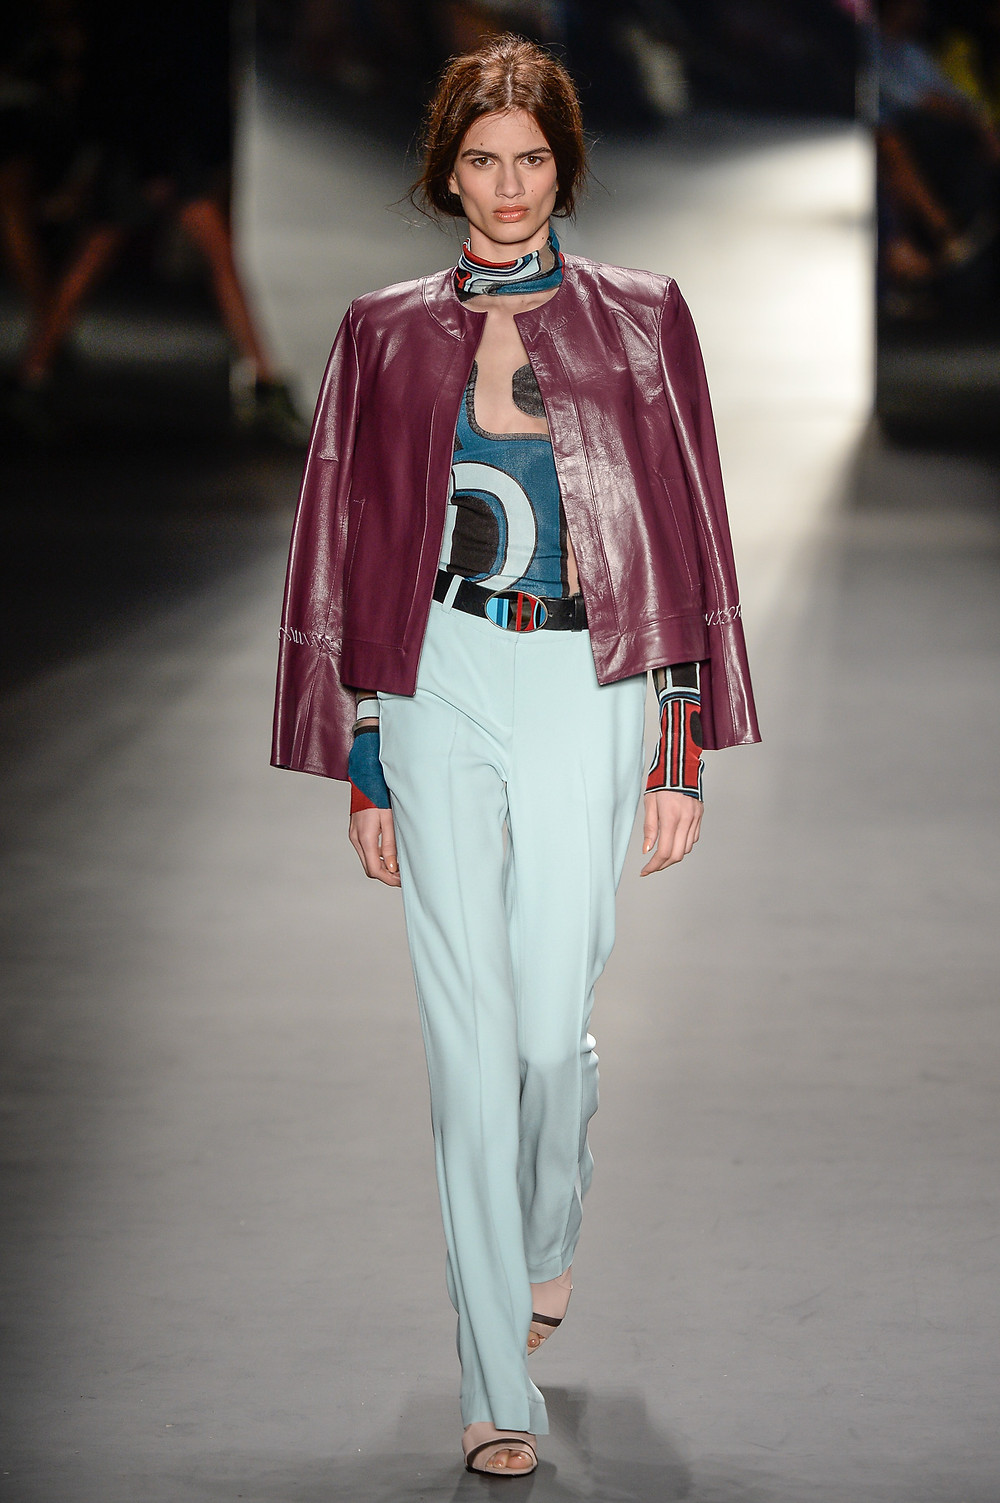 lilly-sarti-spfw-inverno2015-10.jpg